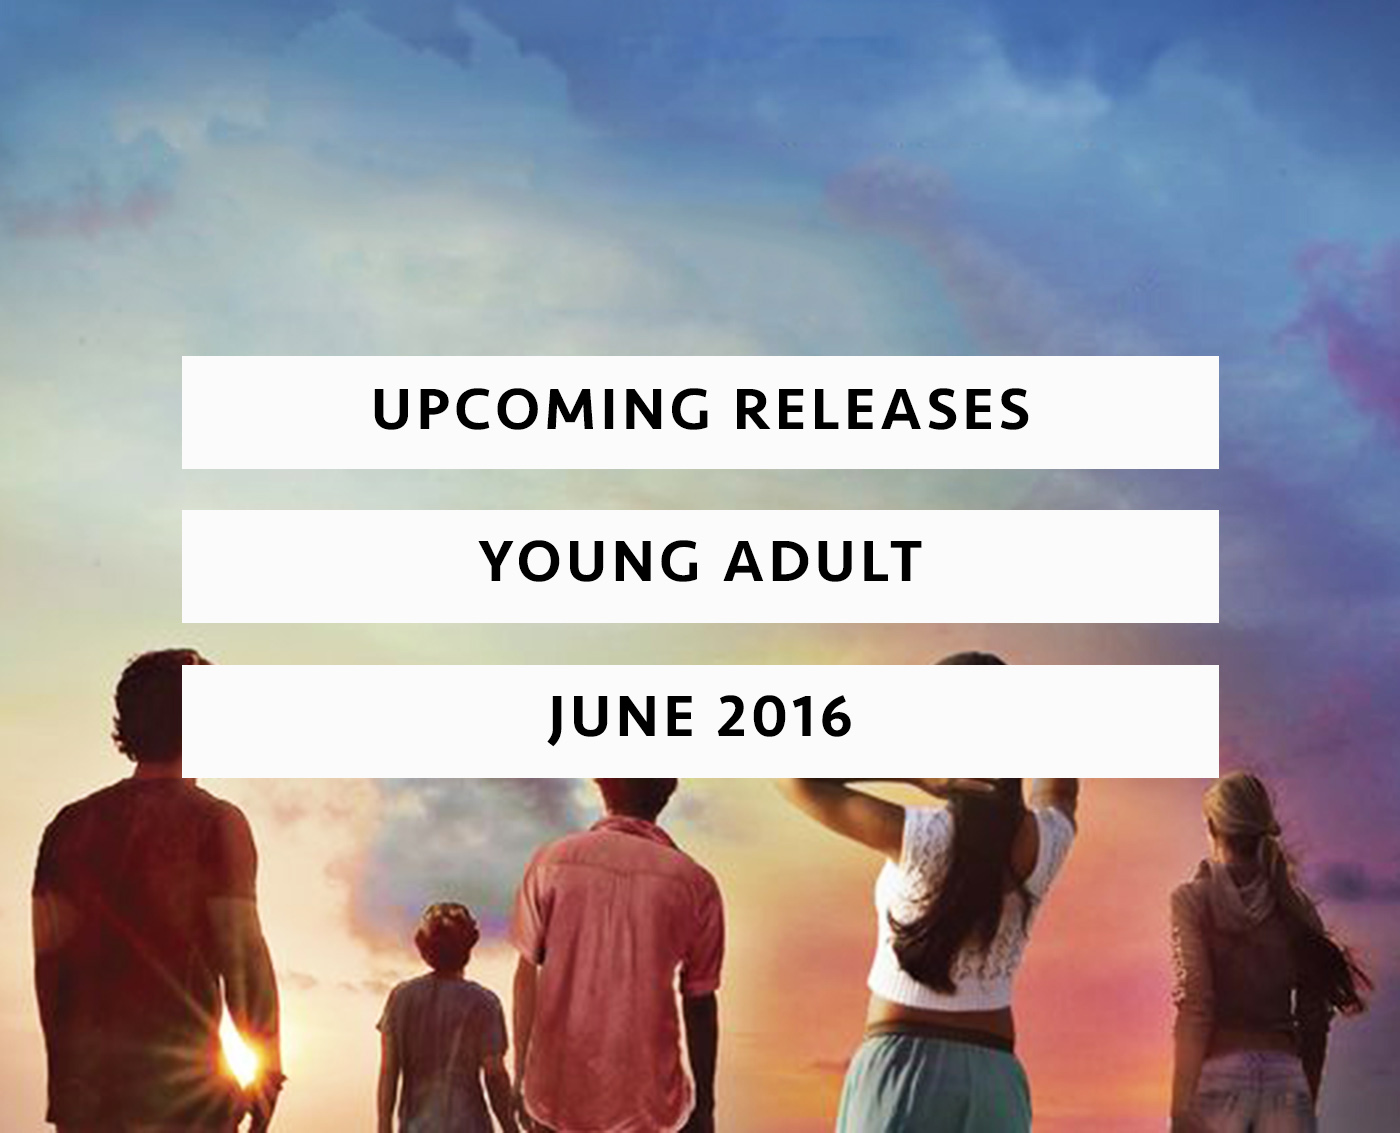 Upcoming Releases June 2016